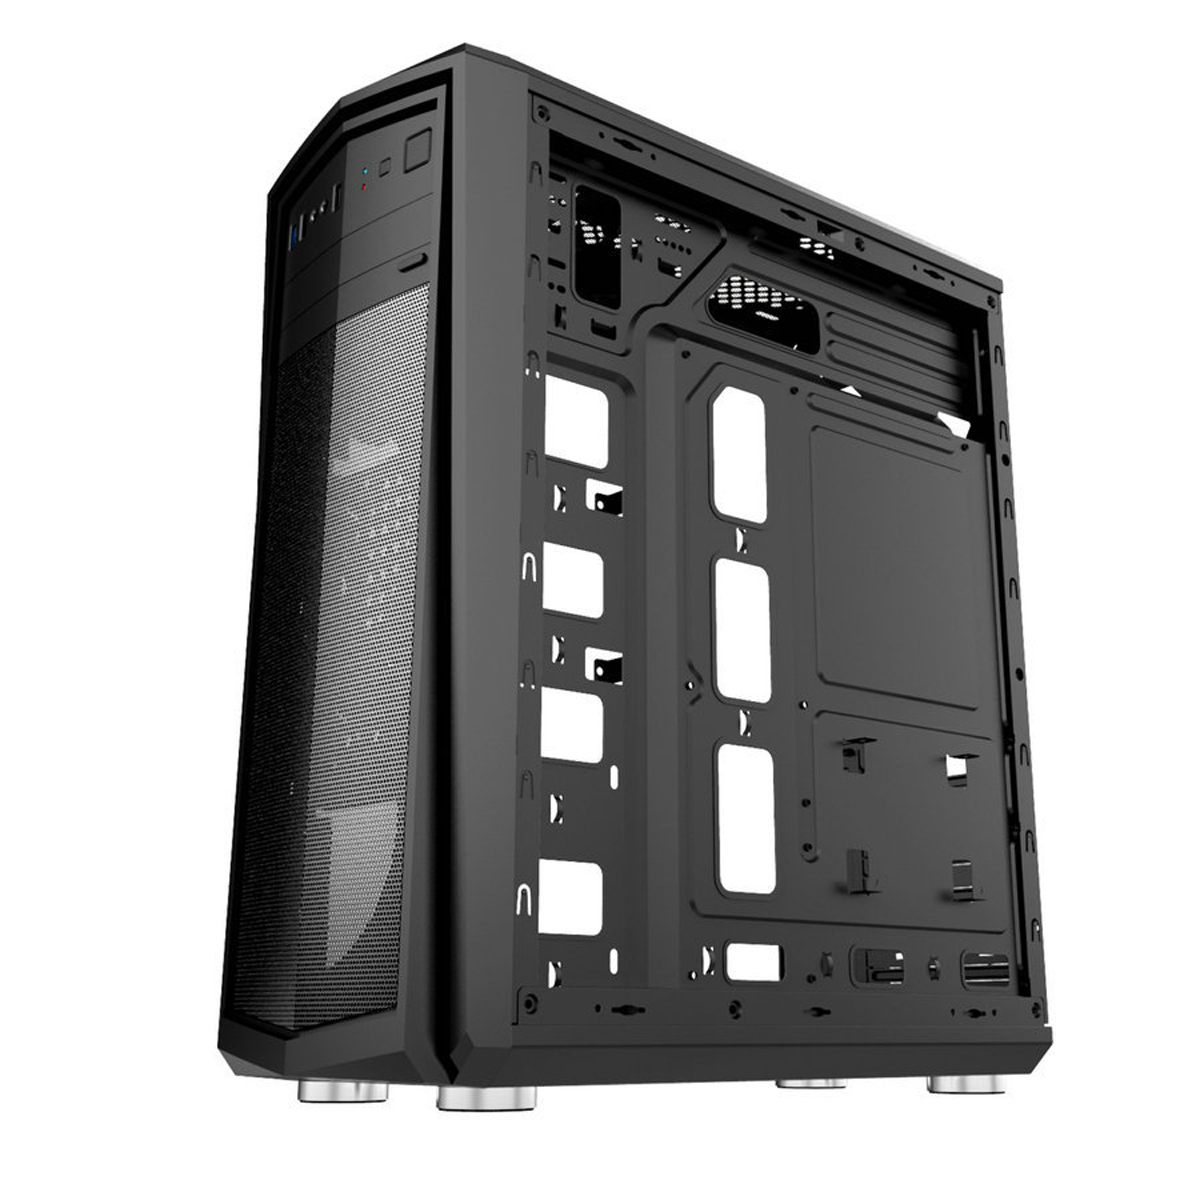 Transparent Side Panel ATX PC Case Desktop Computer Case for ATX Micro-ATX Mini-ITX Motherboard